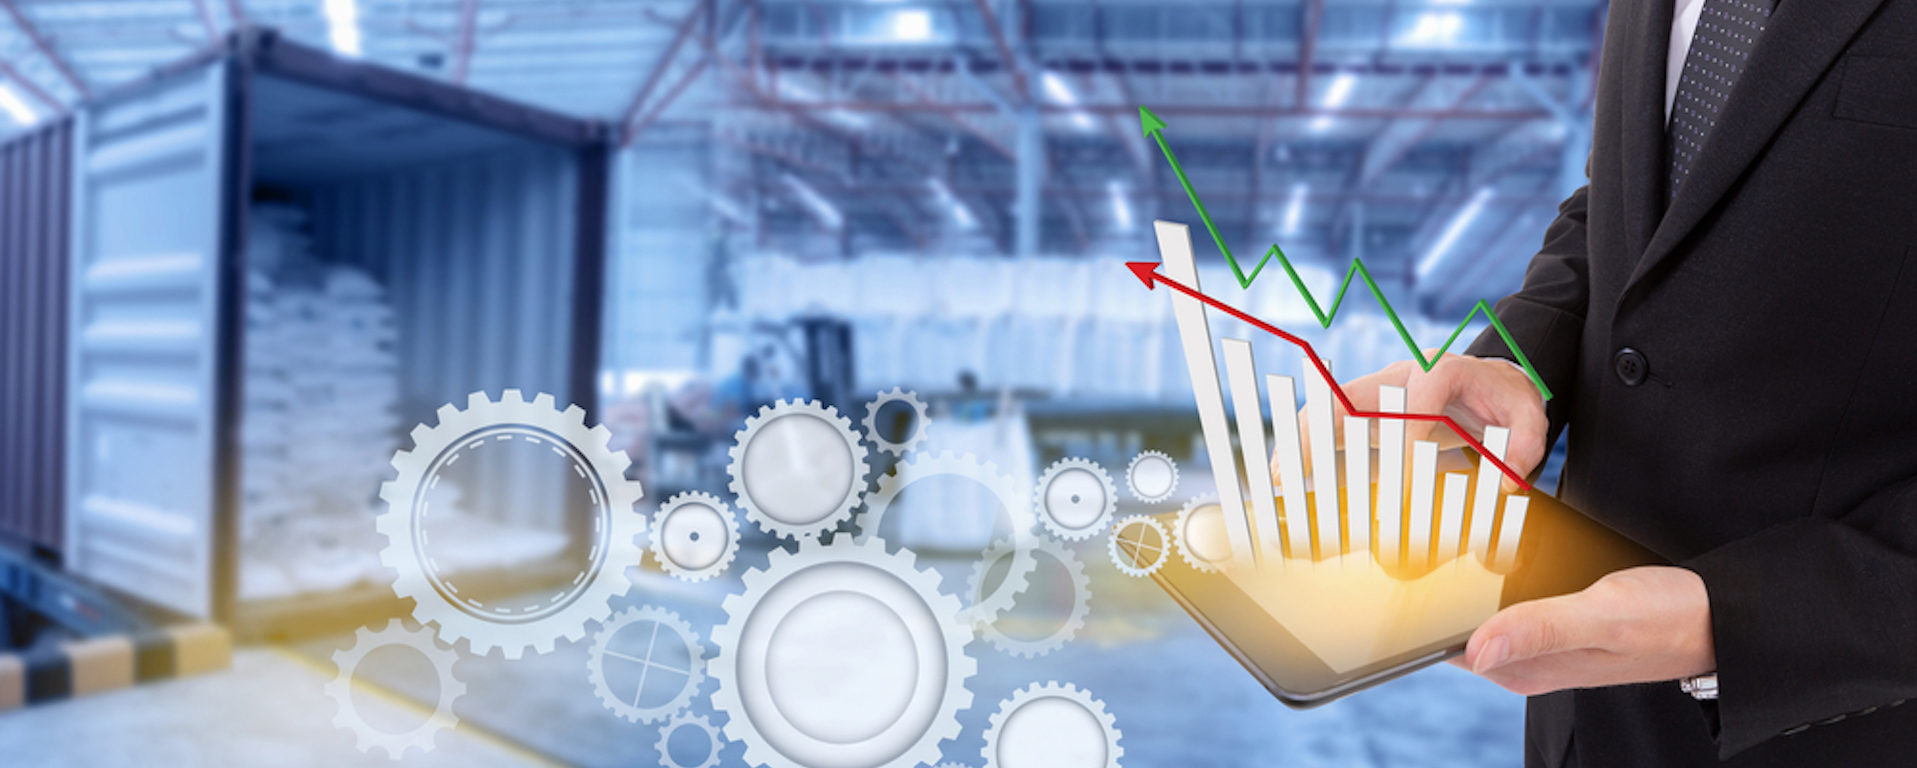 Technology Management Image: Location Helps Supply Chain Executives Embrace IoT And